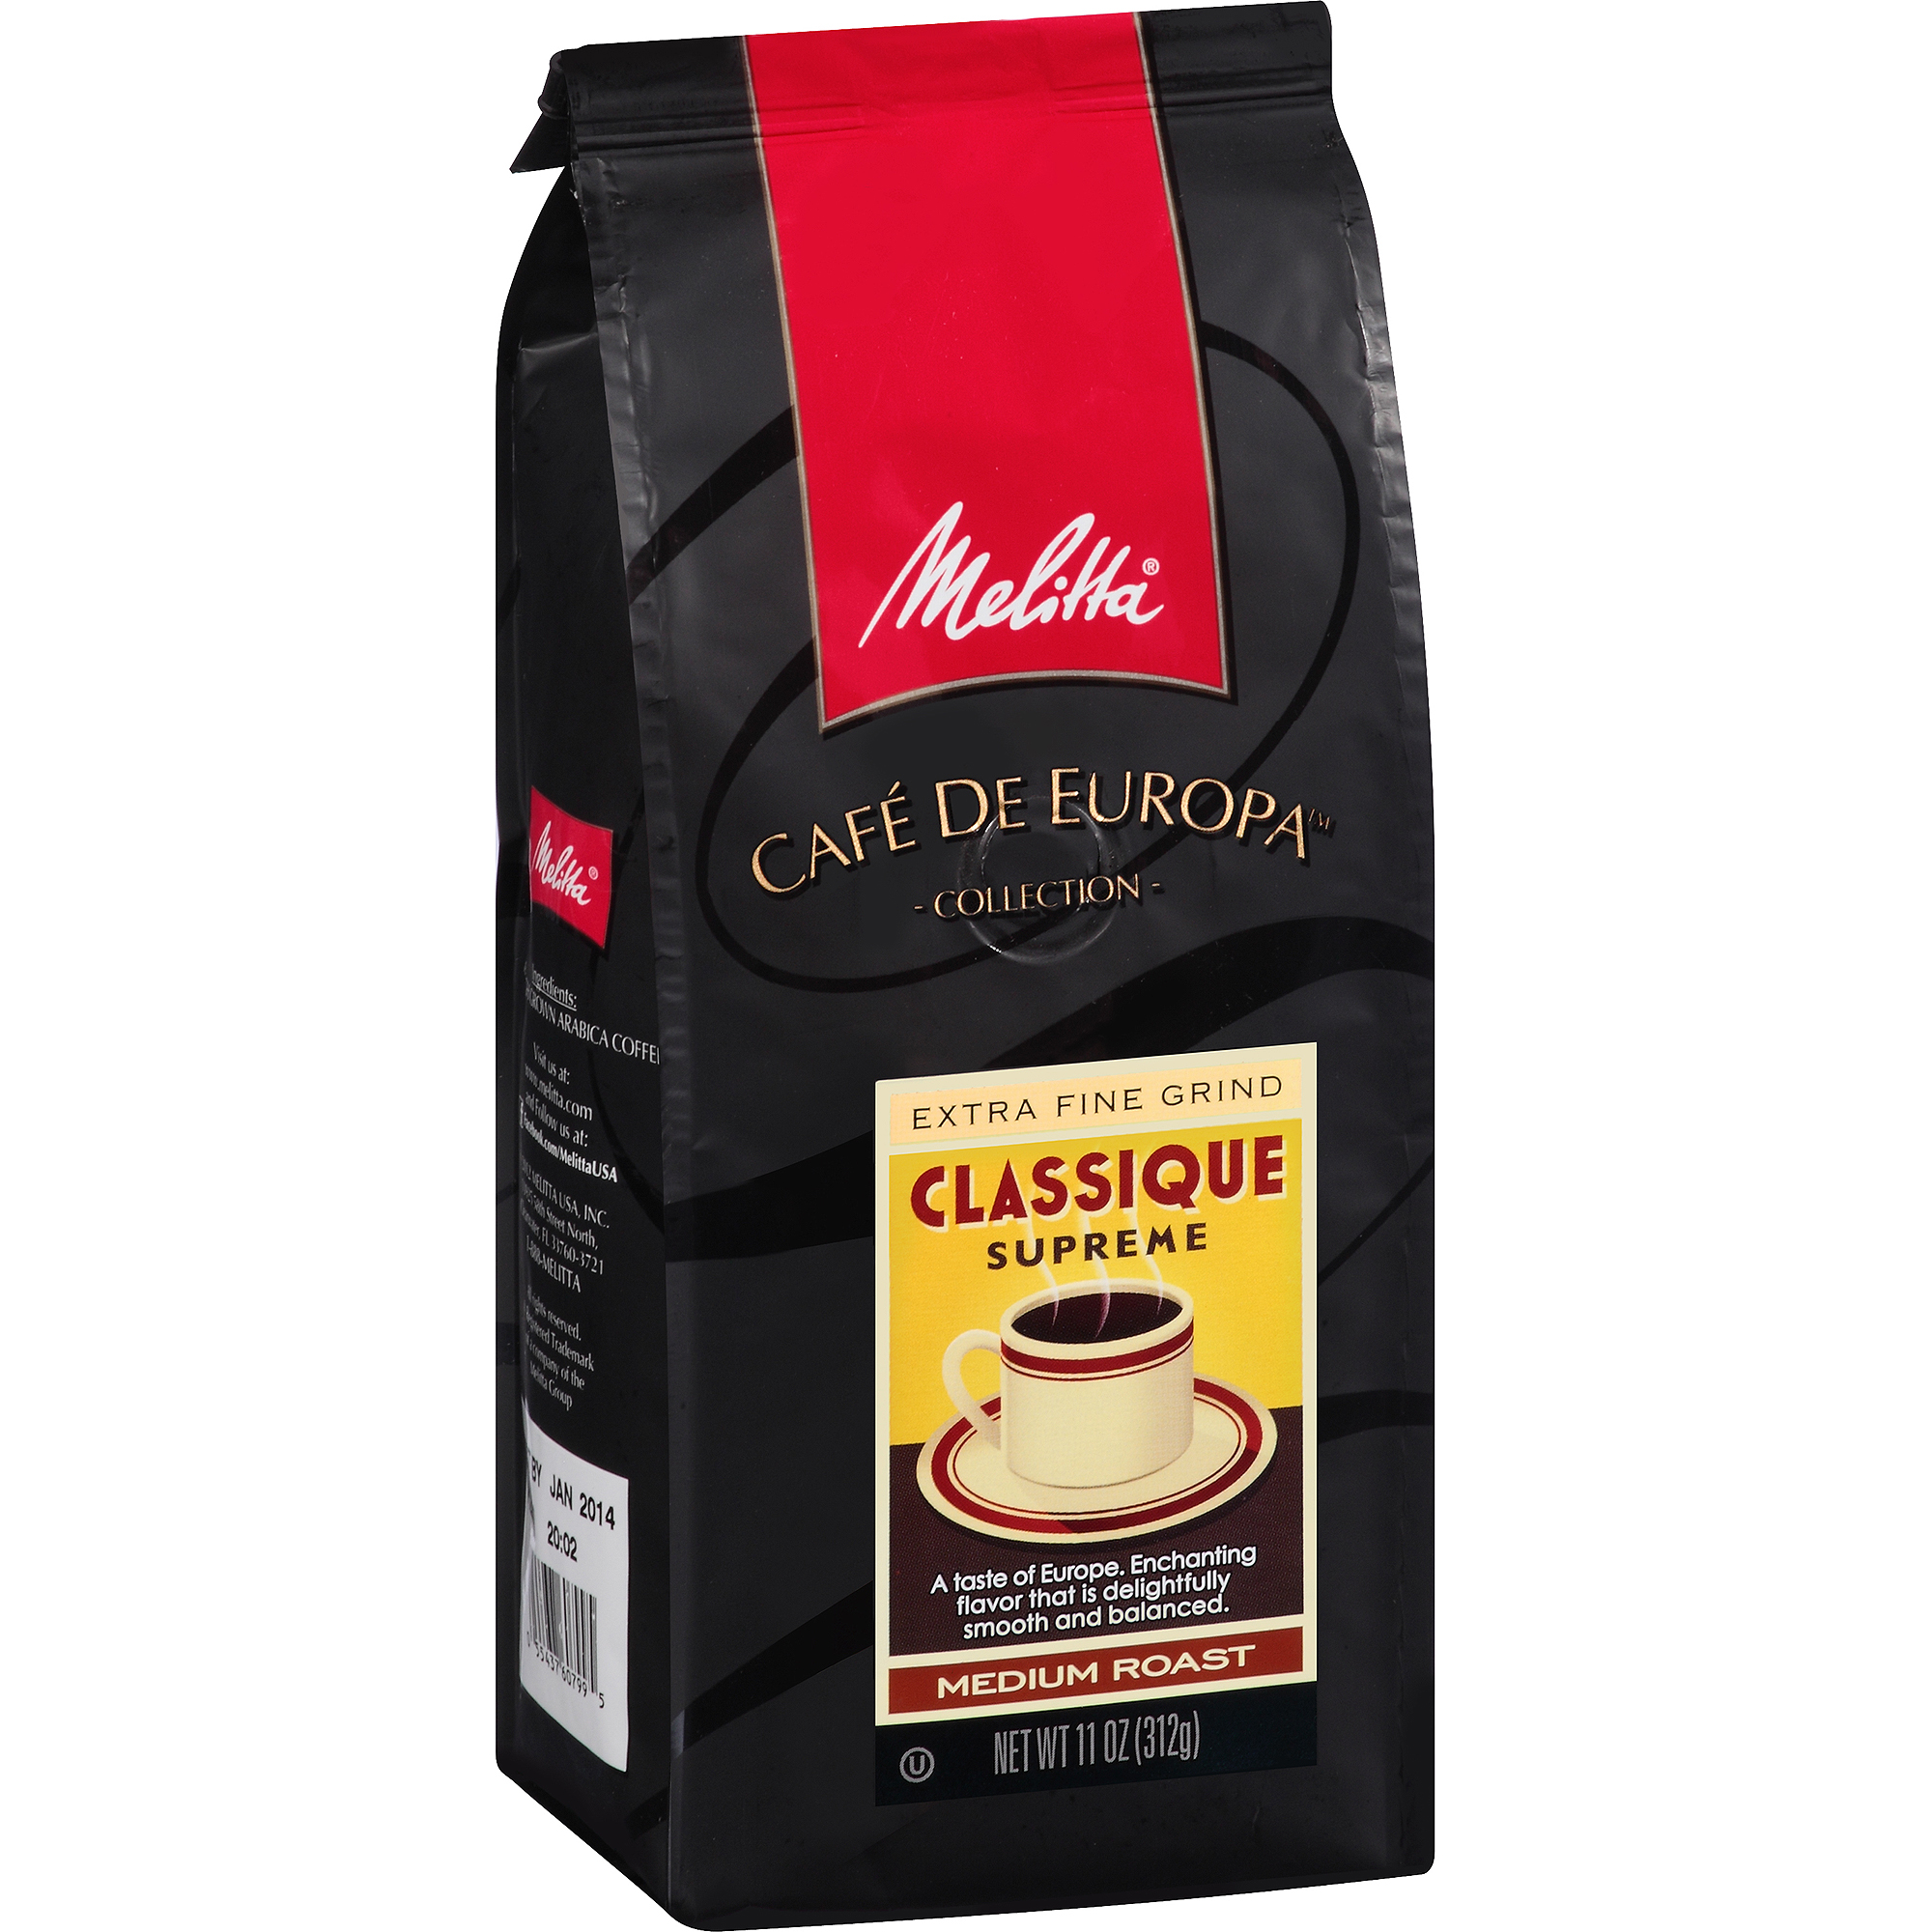 Melitta Cafe de Europa Medium Roast Extra Fine Grind Classique Supreme Gourmet Coffee, 11 oz